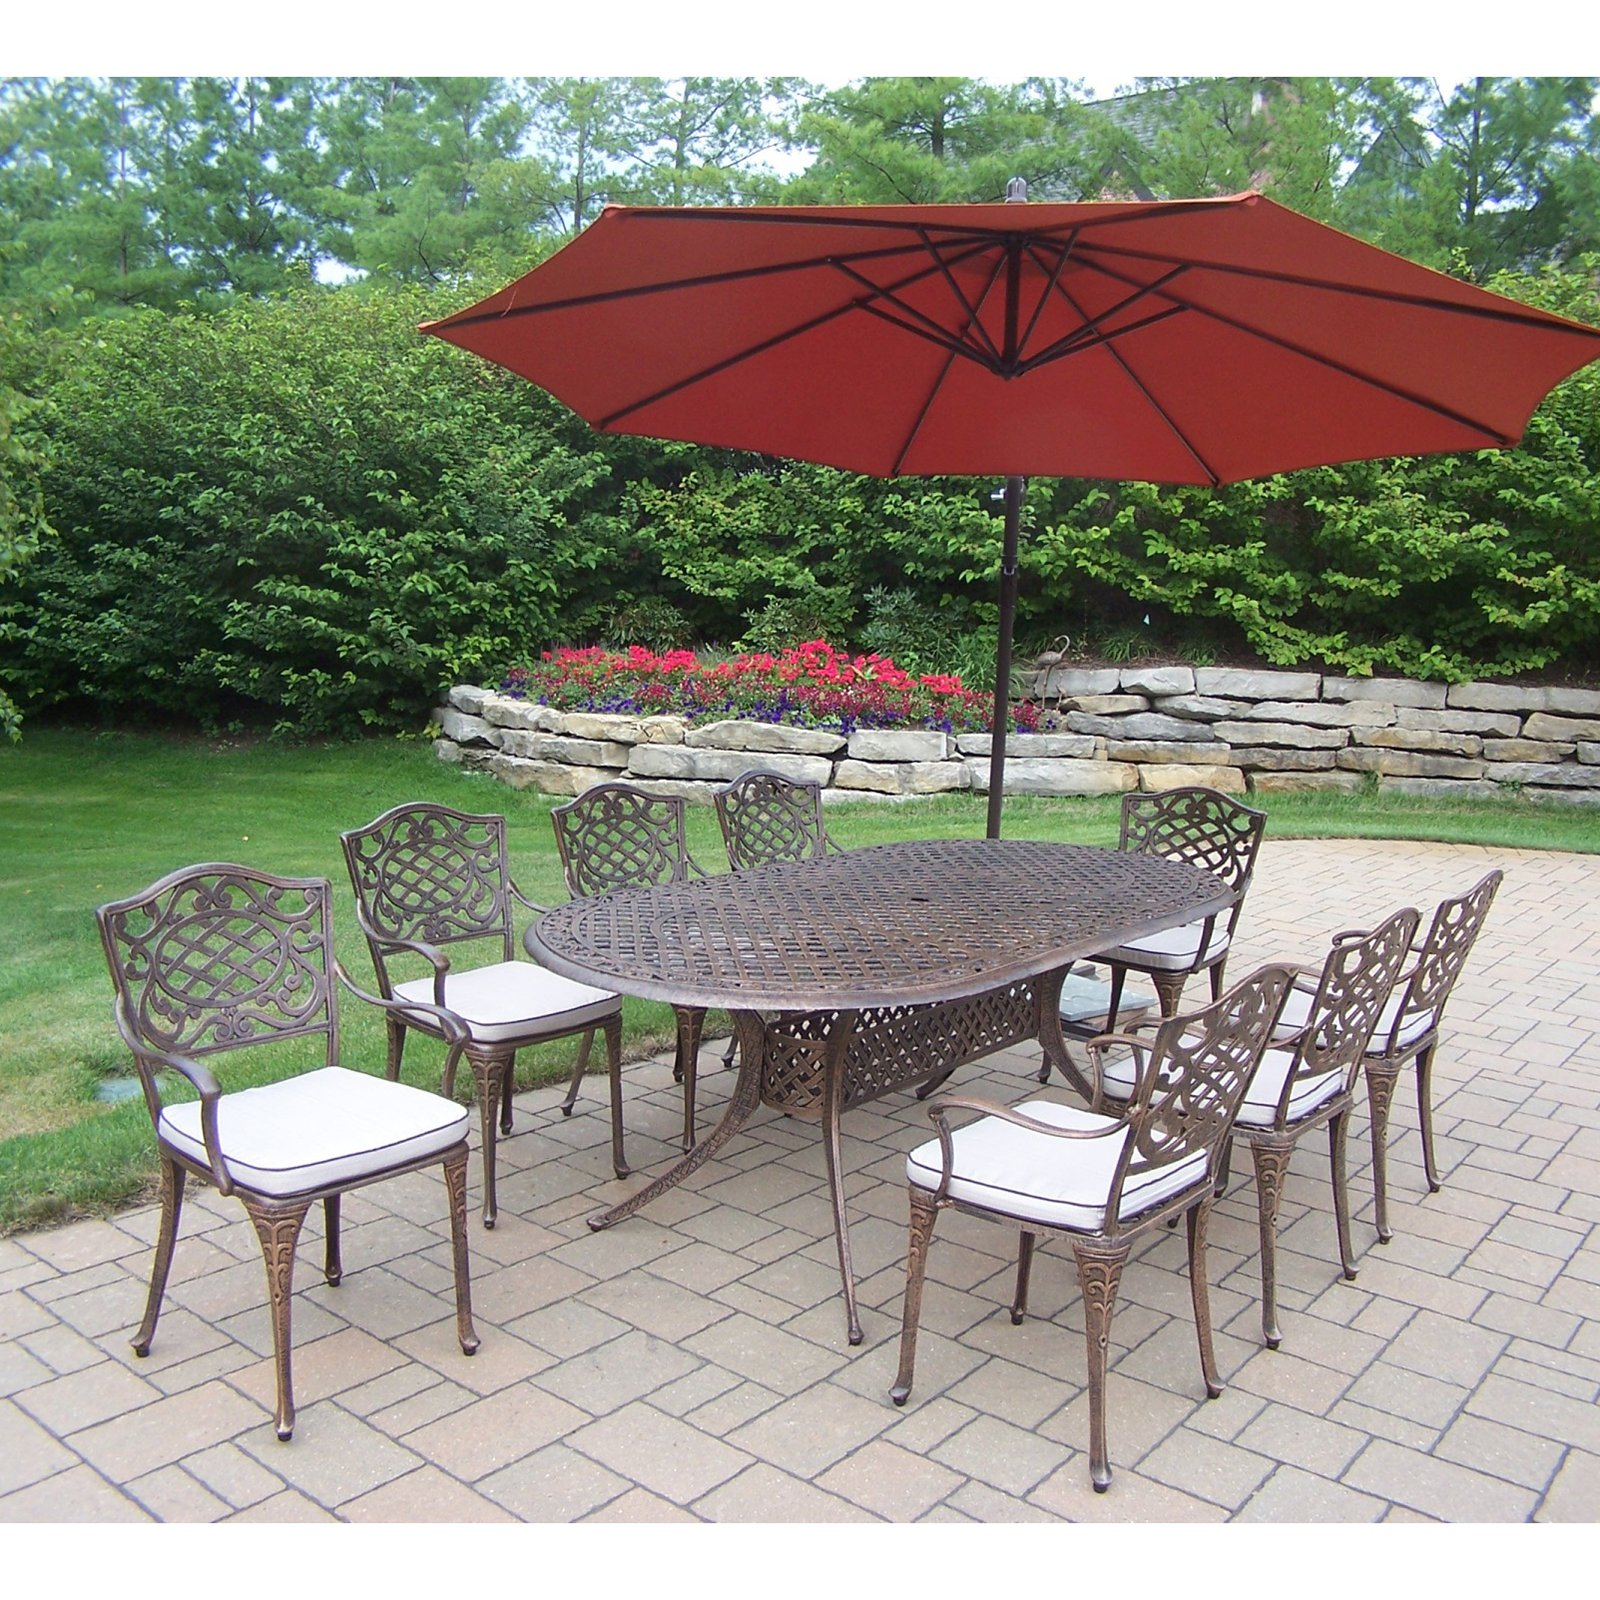 Oakland Living Mississippi Cast Aluminum 82 x 42 in. Oval Patio Dining Set with Cushions and Cantilever Umbrella - Burnt Orange Umbrella